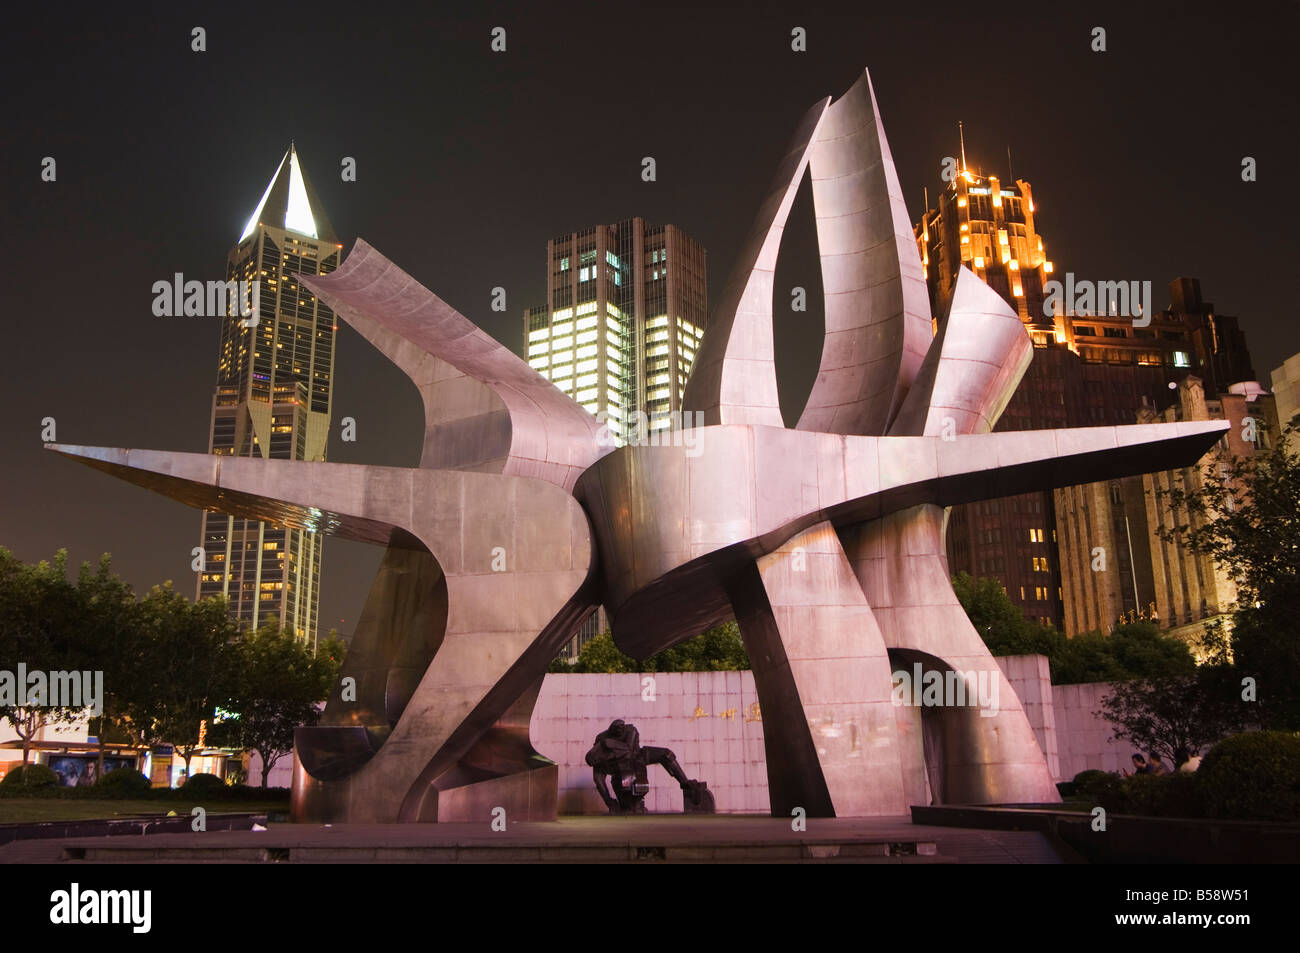 Modern art installation to commemorate the 530 revolution (May 15th 1925), Renmin Square, Shanghai, China - Stock Image